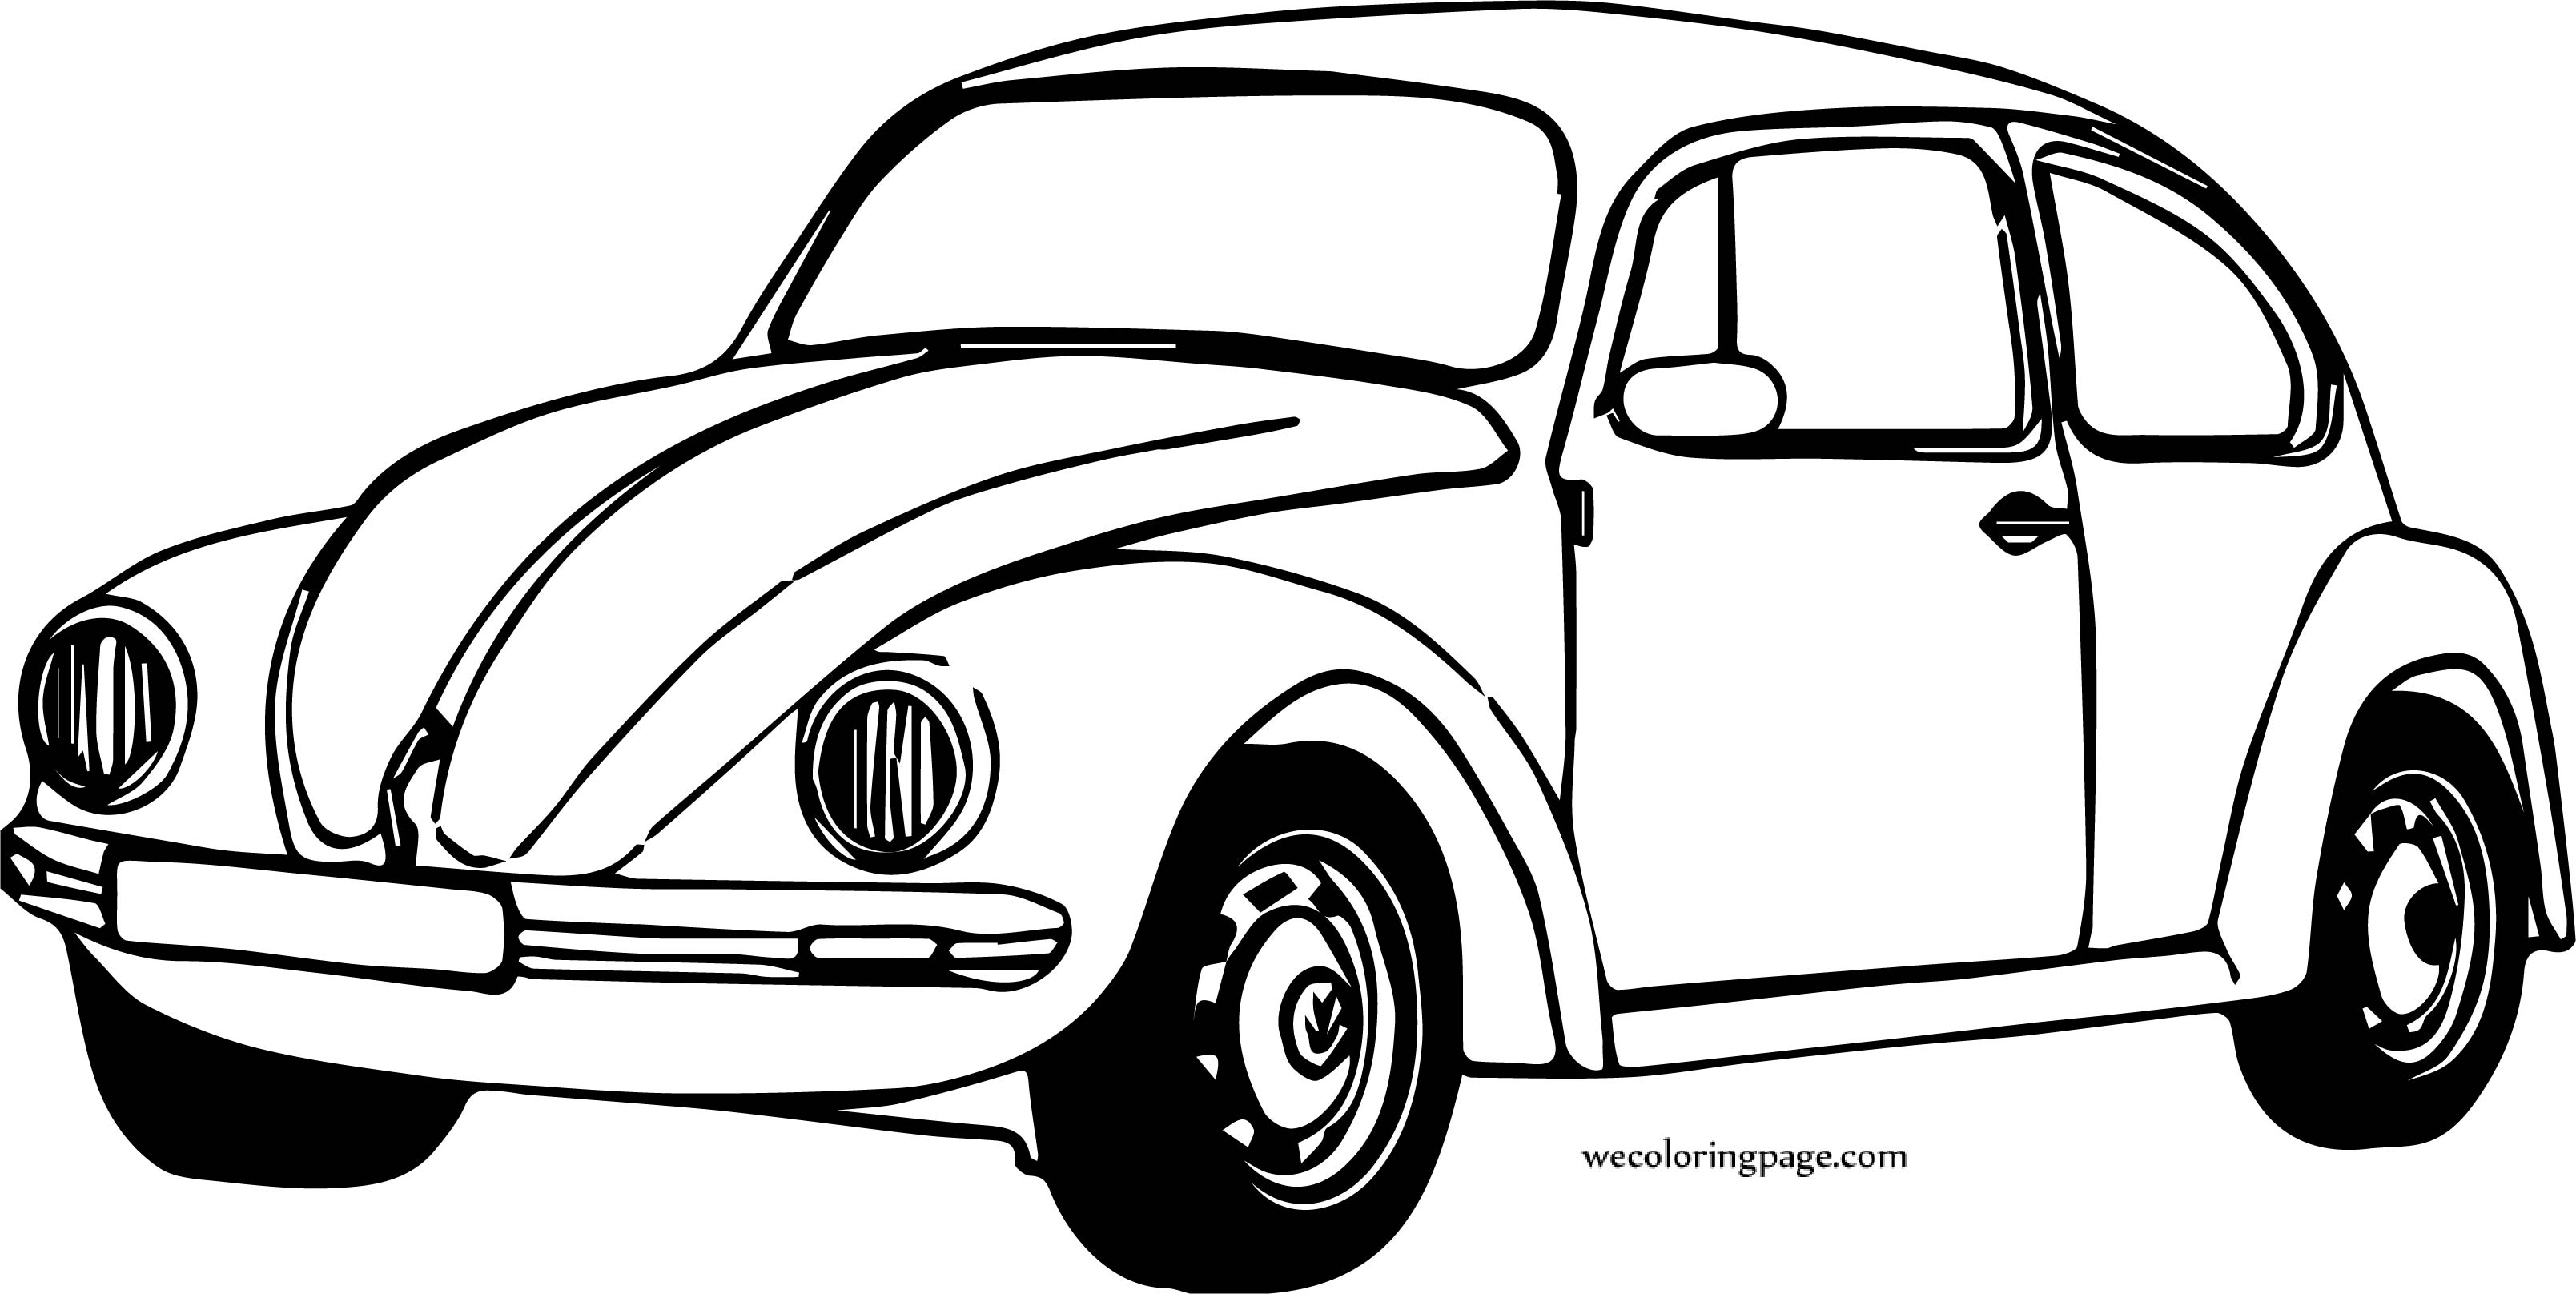 Small Turtle Car Coloring Page